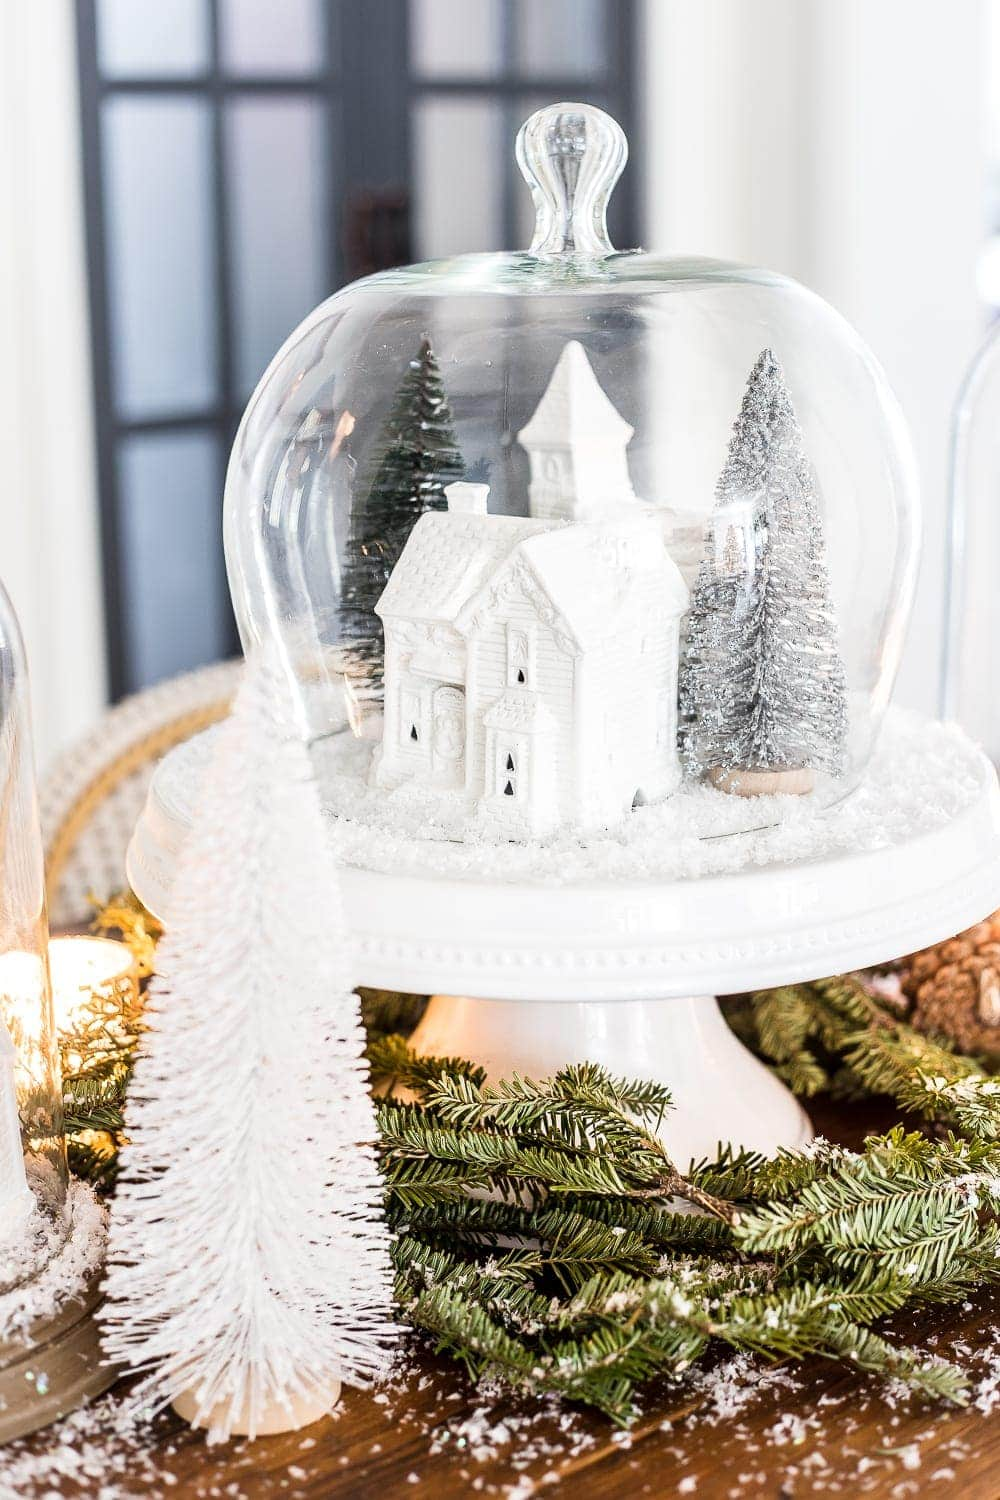 Thrifty Christmas decorating idea: spray paint old ceramic villages for a modern look